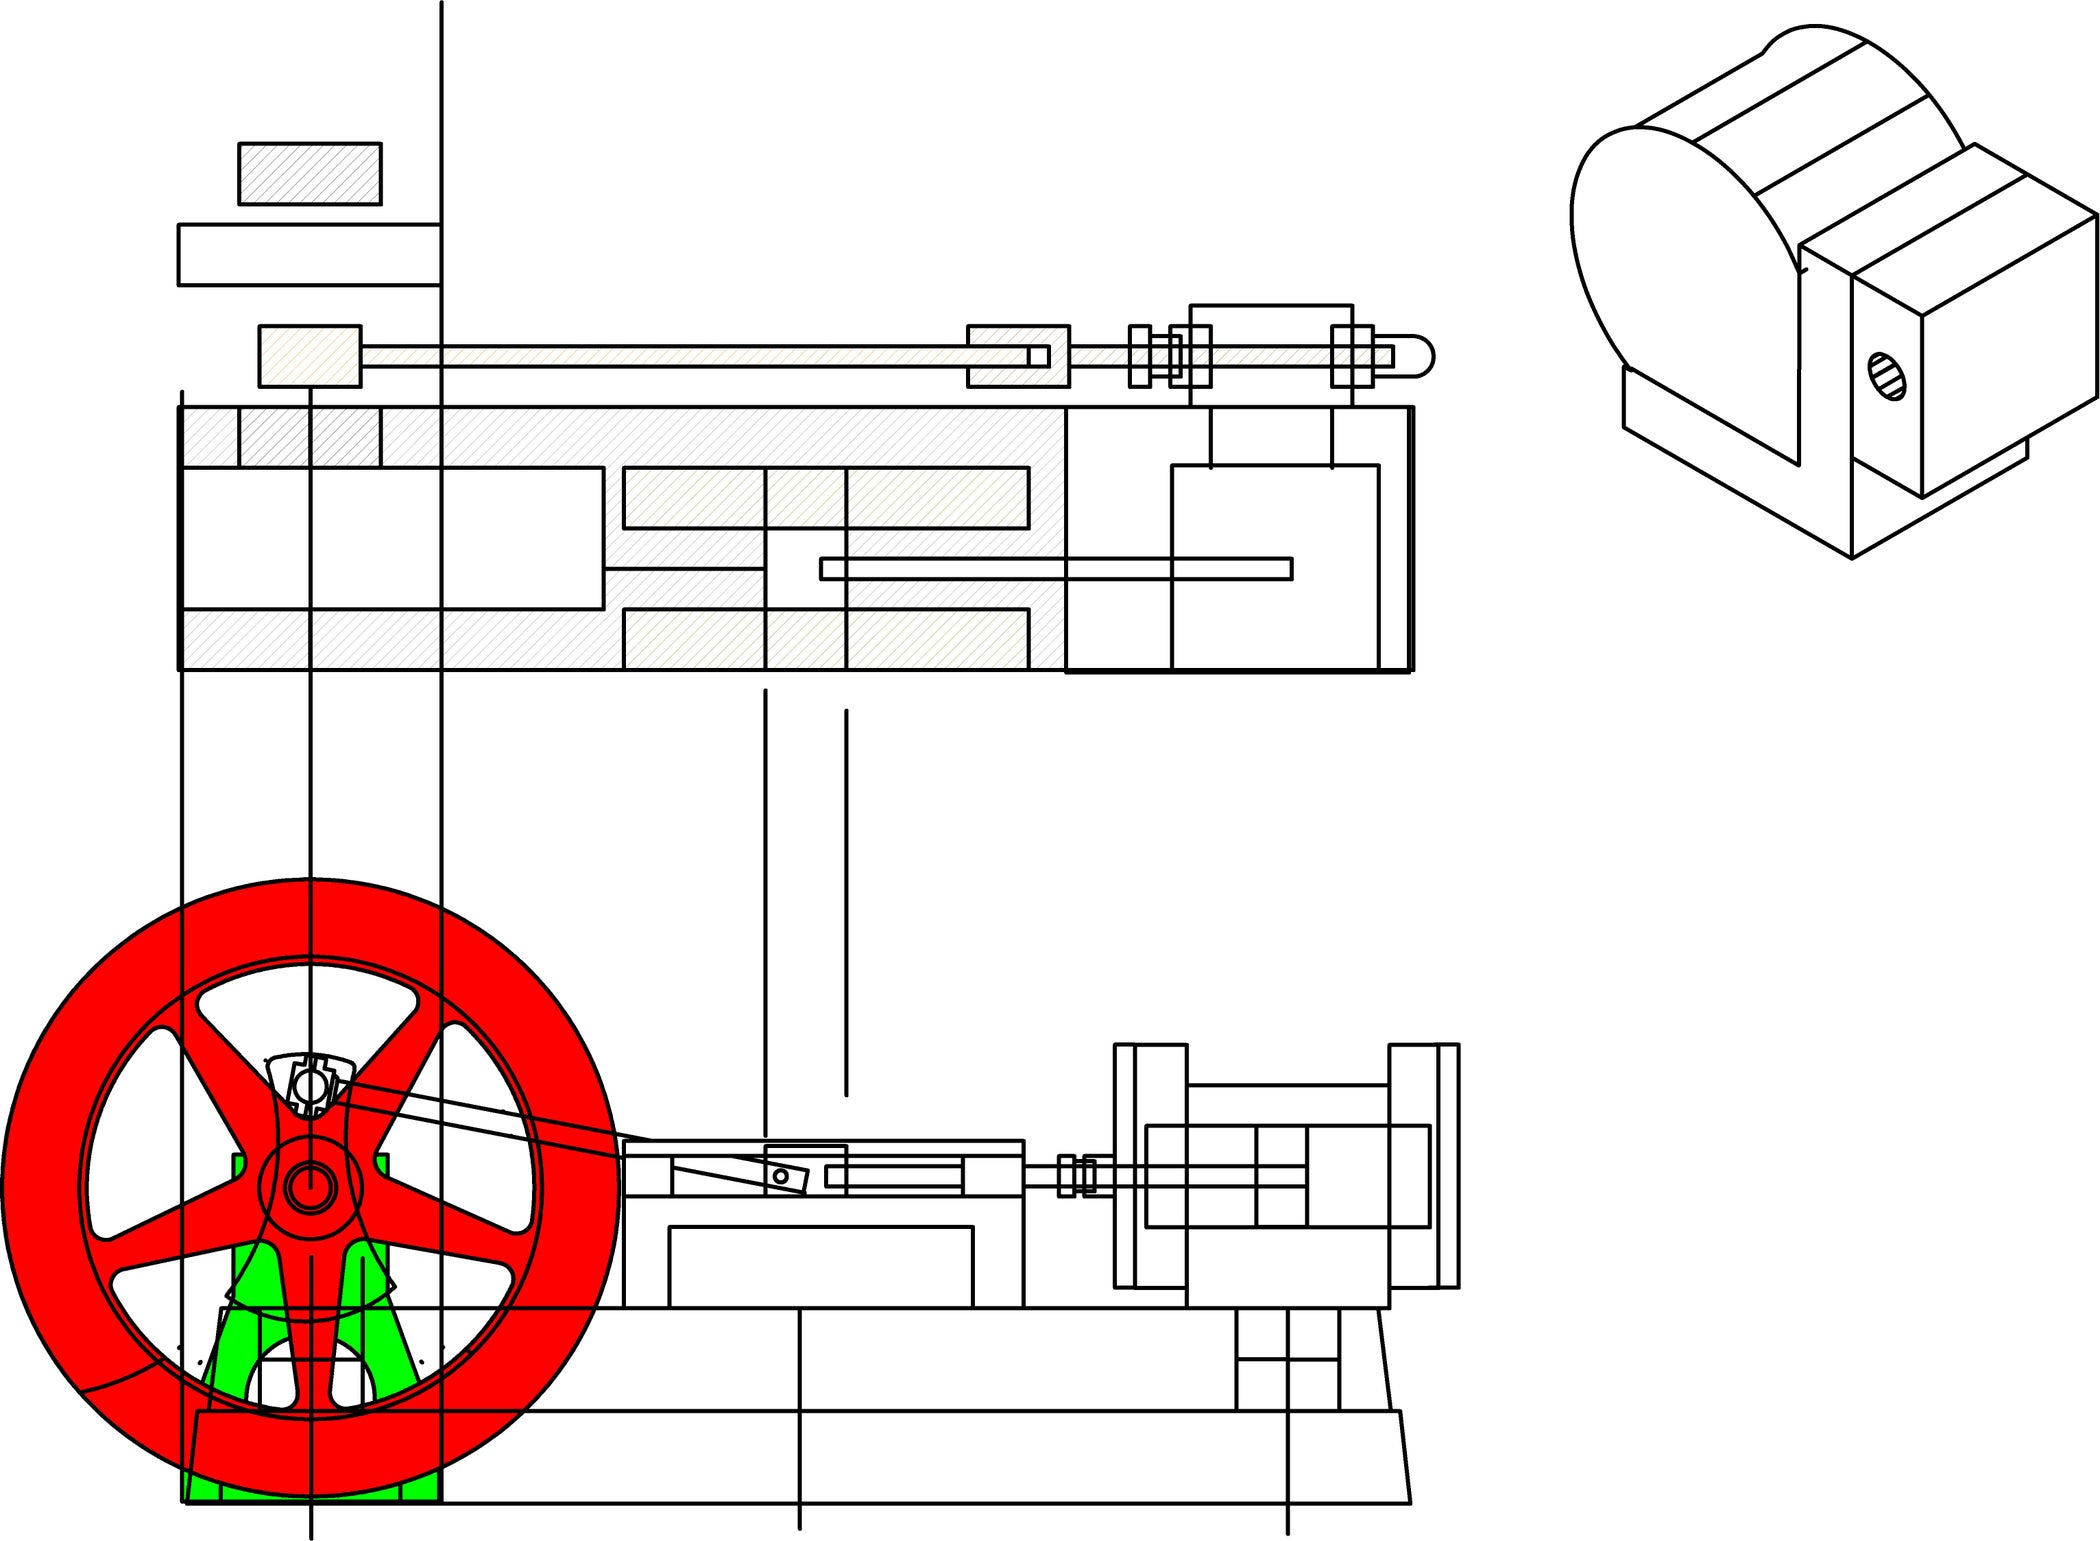 Technical Sketching And Drawing 7 Steps With Pictures Draw A Schematic Diagram